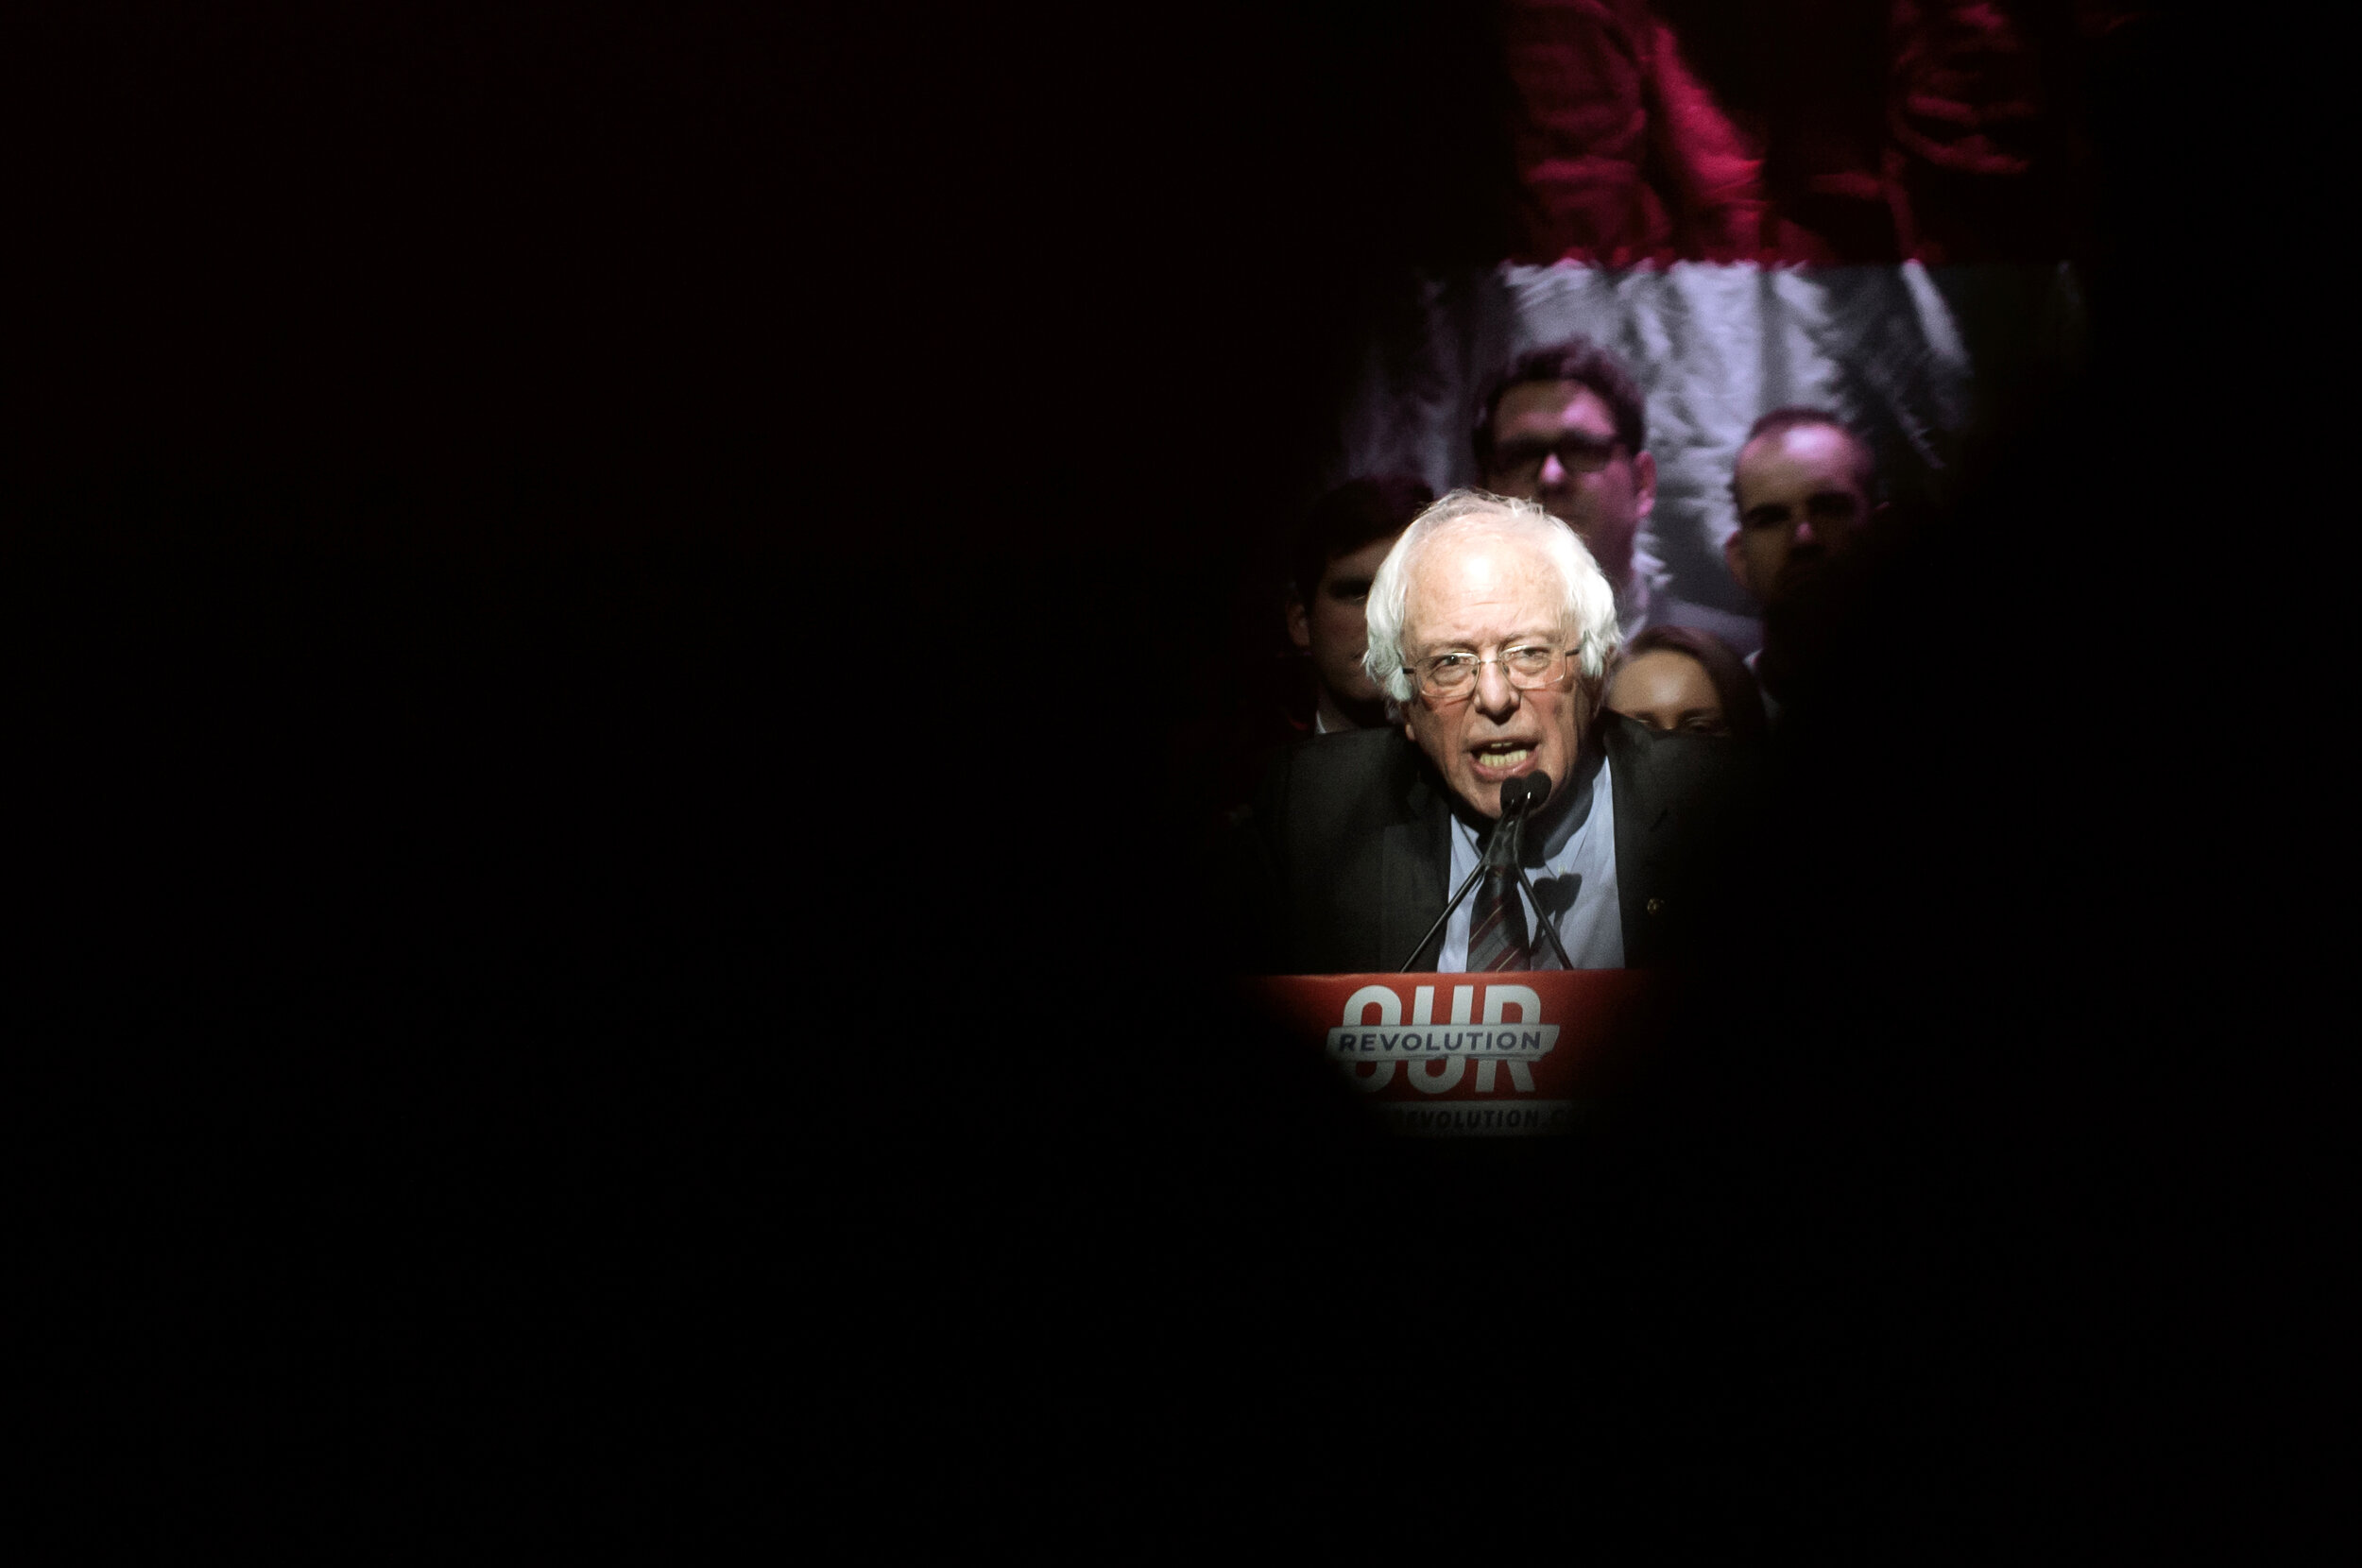 U.S. Sen. Bernie Sanders of Vermont speaks to the rowdy crowd at the Our Revolution Rally held at the Orpheum Theater in Boston MA.